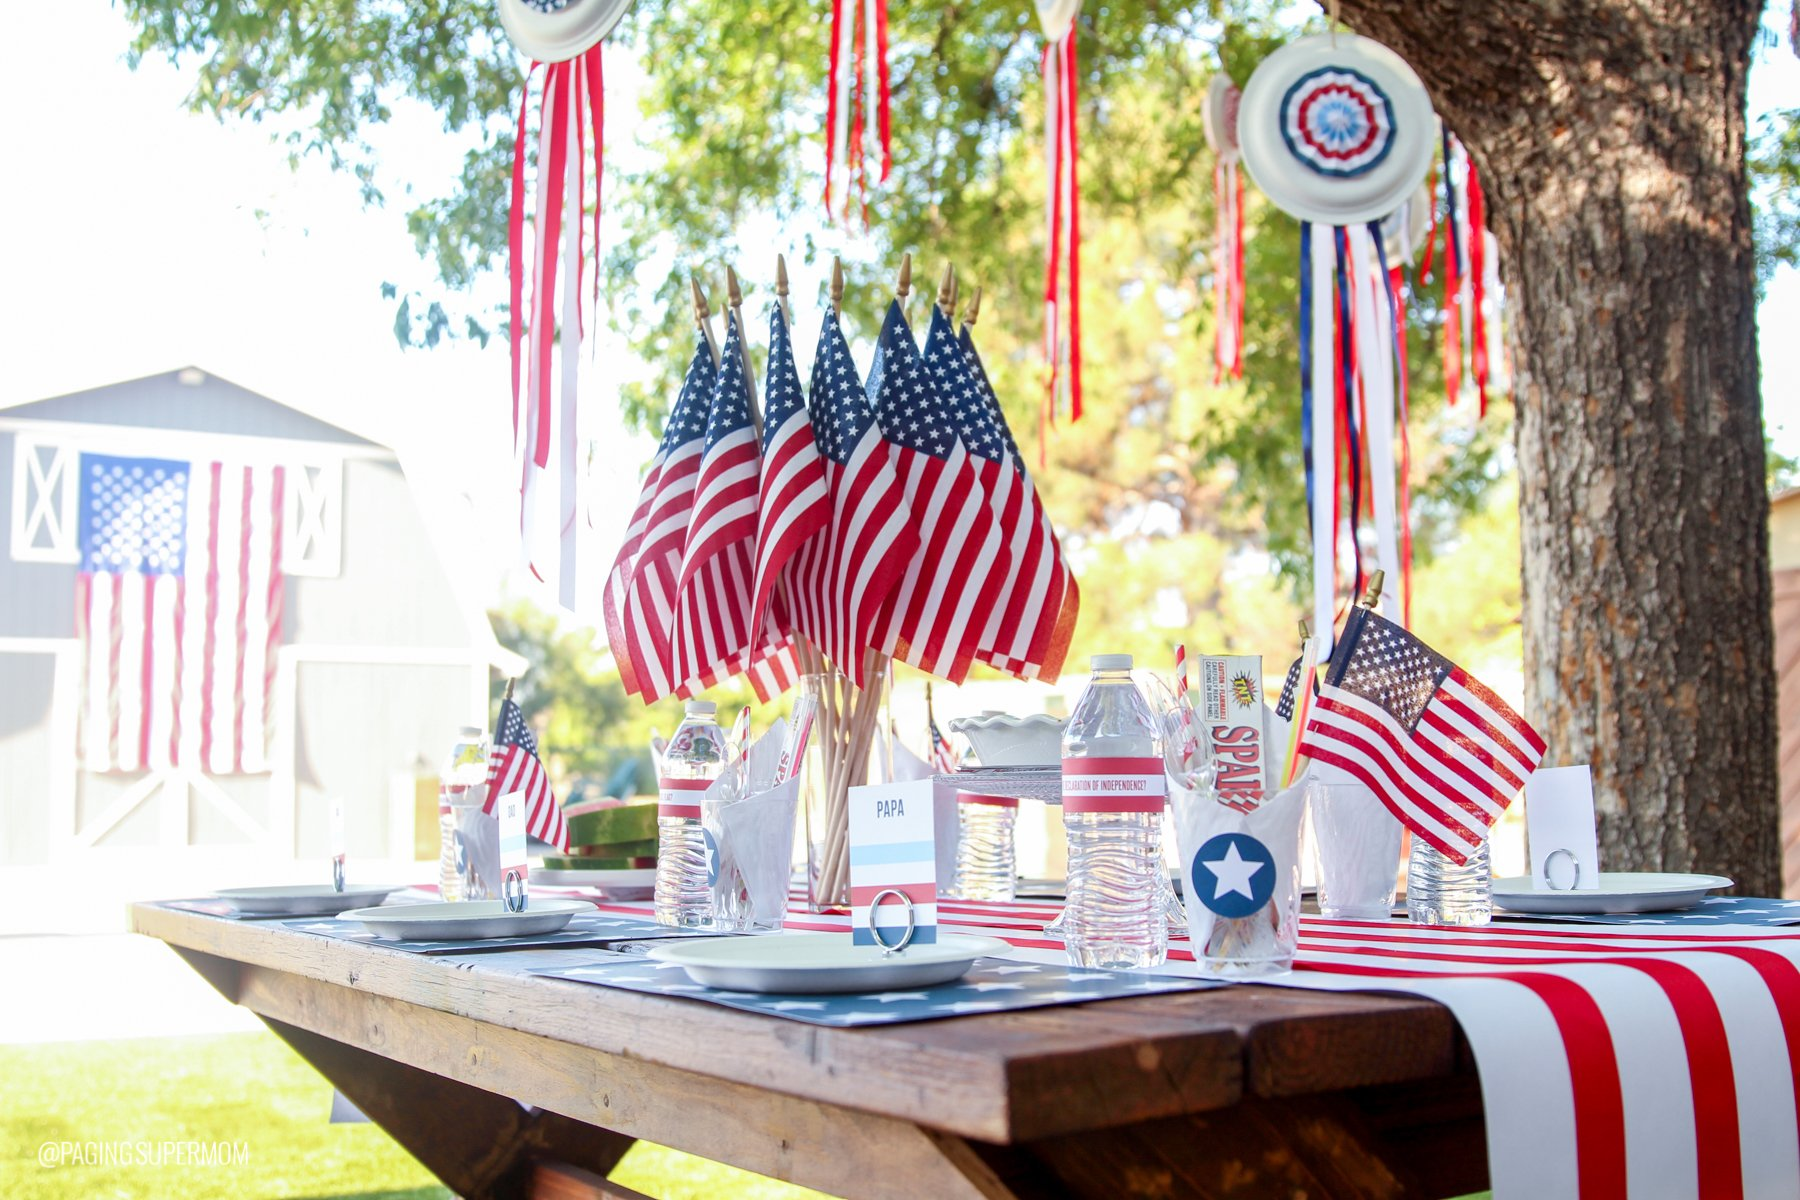 Easy Summer Barbecue & printable July 4th Decor Ideas via @PagingSupermom